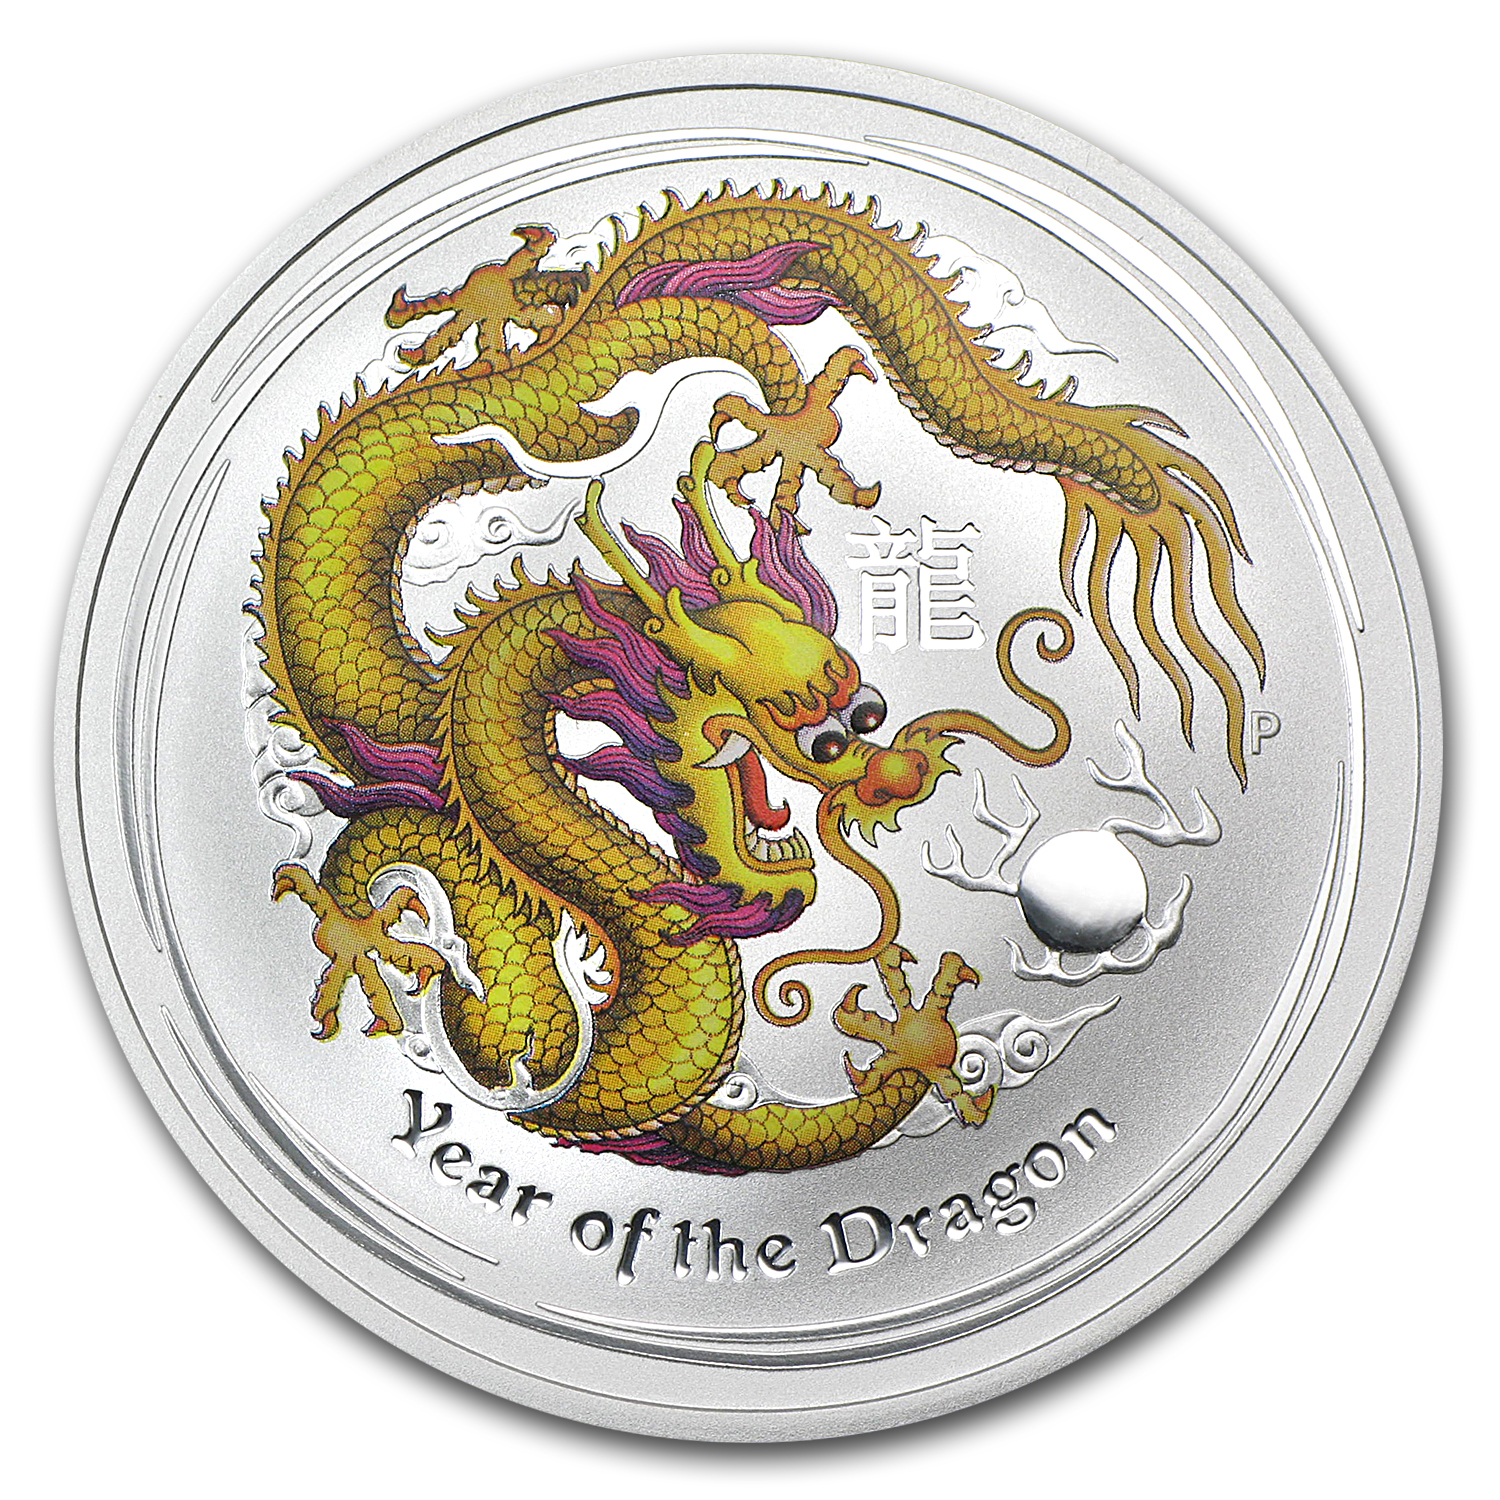 2012 Australia 1 oz Silver Yellow Dragon BU (ANDA, Melbourne)